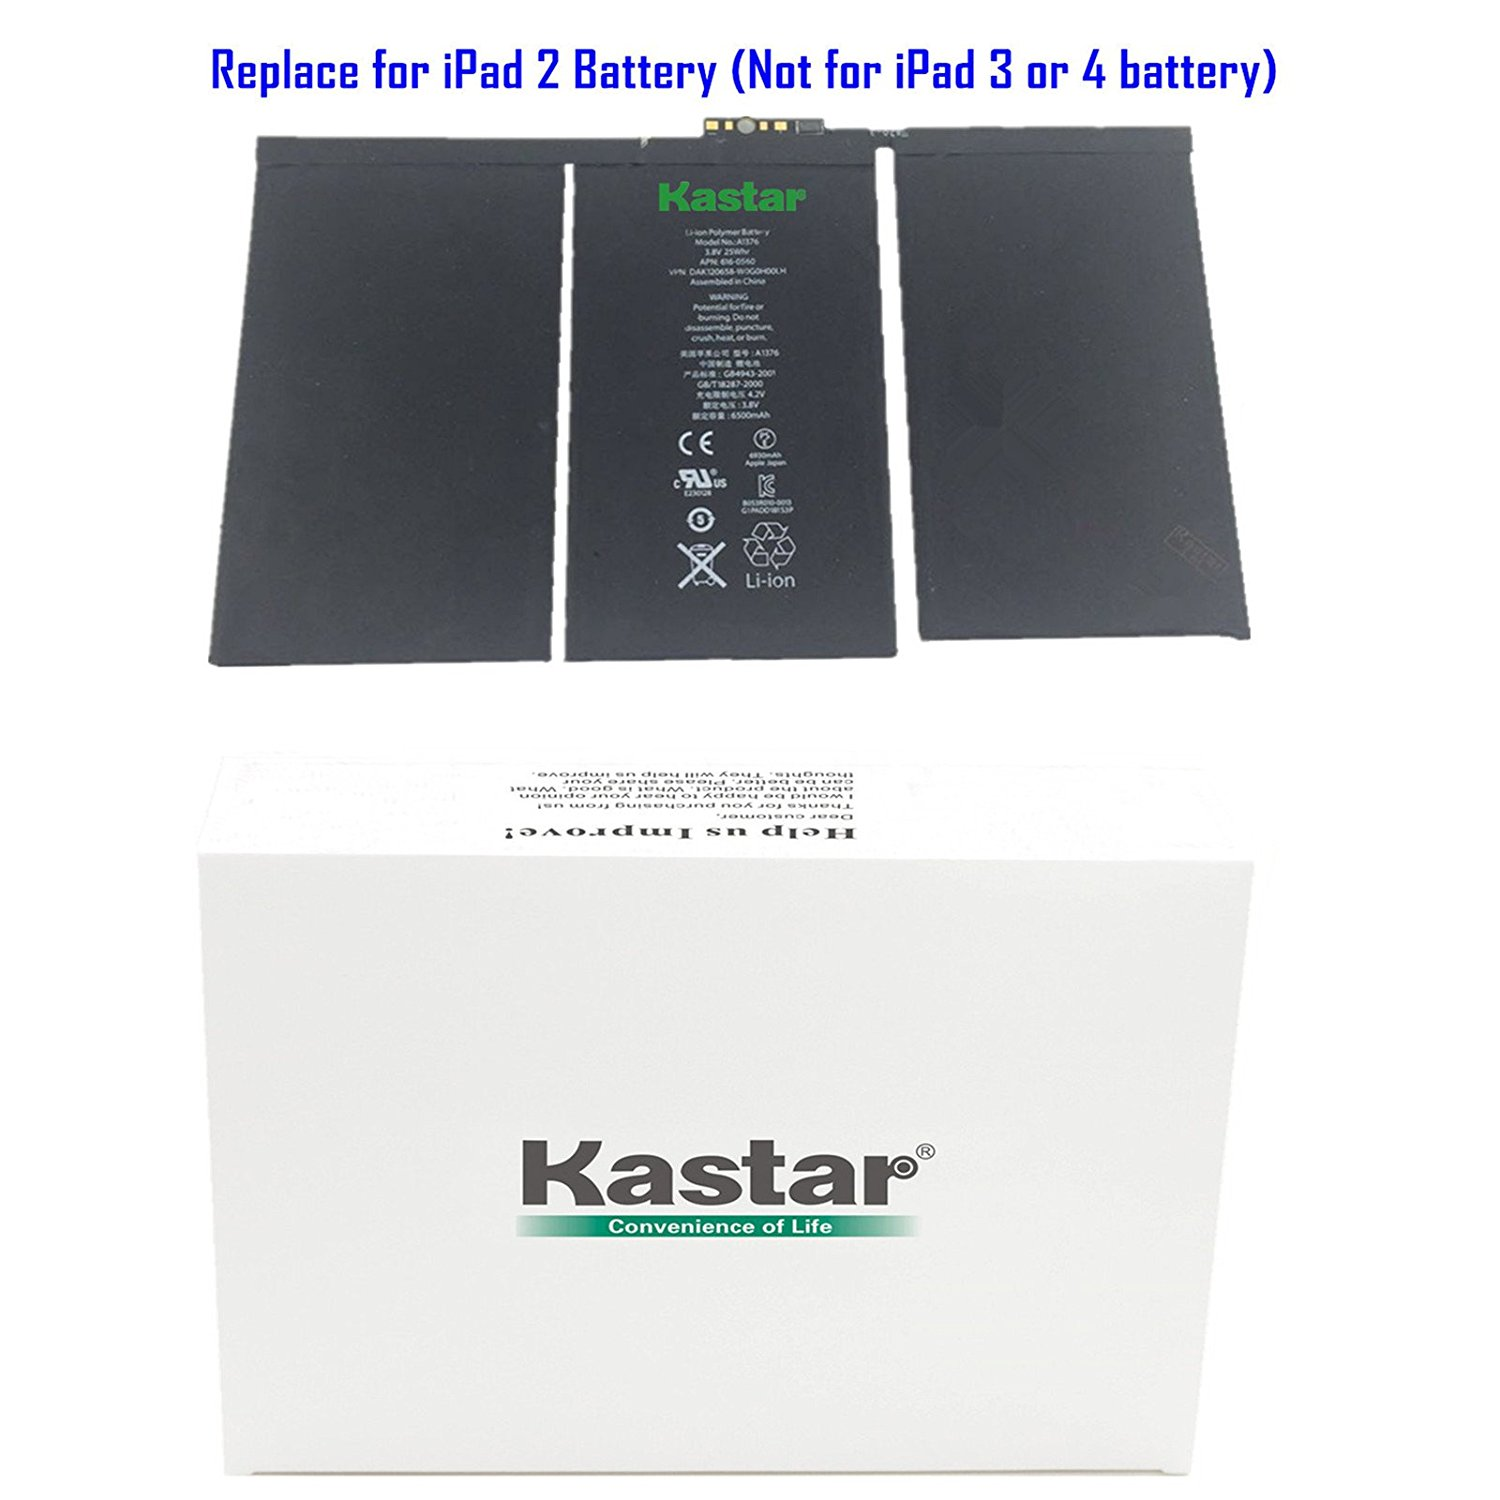 Kastar Battery for Apple iPad 2 (the 2nd Generation iPad) Replacement Internal Battery 3.8V 25Whr 6500mAh Fixes for Apple iPad 2